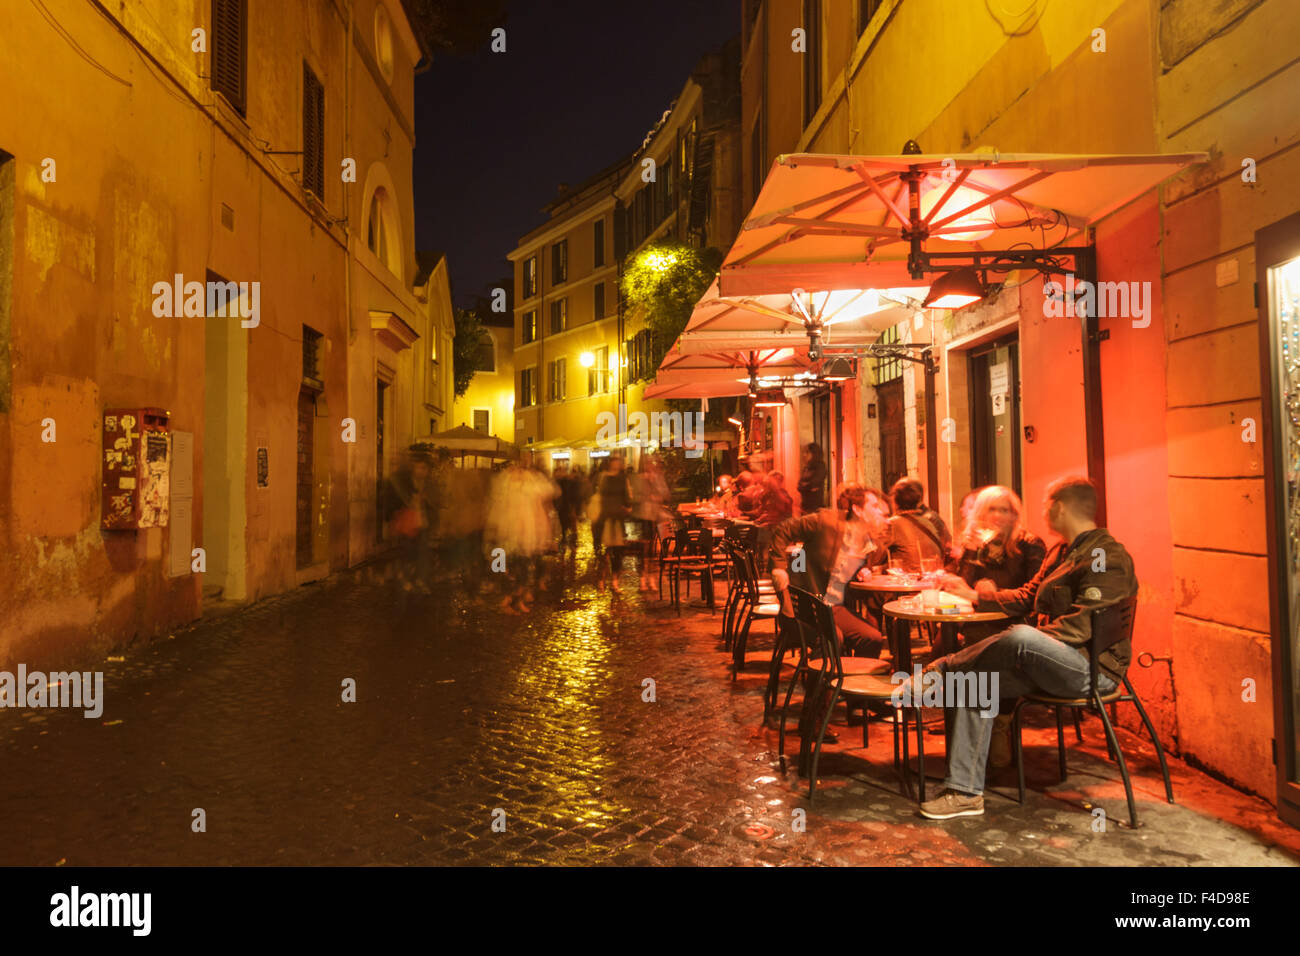 Outdoor bar terrace at night in trastevere rome italy for Terrace night